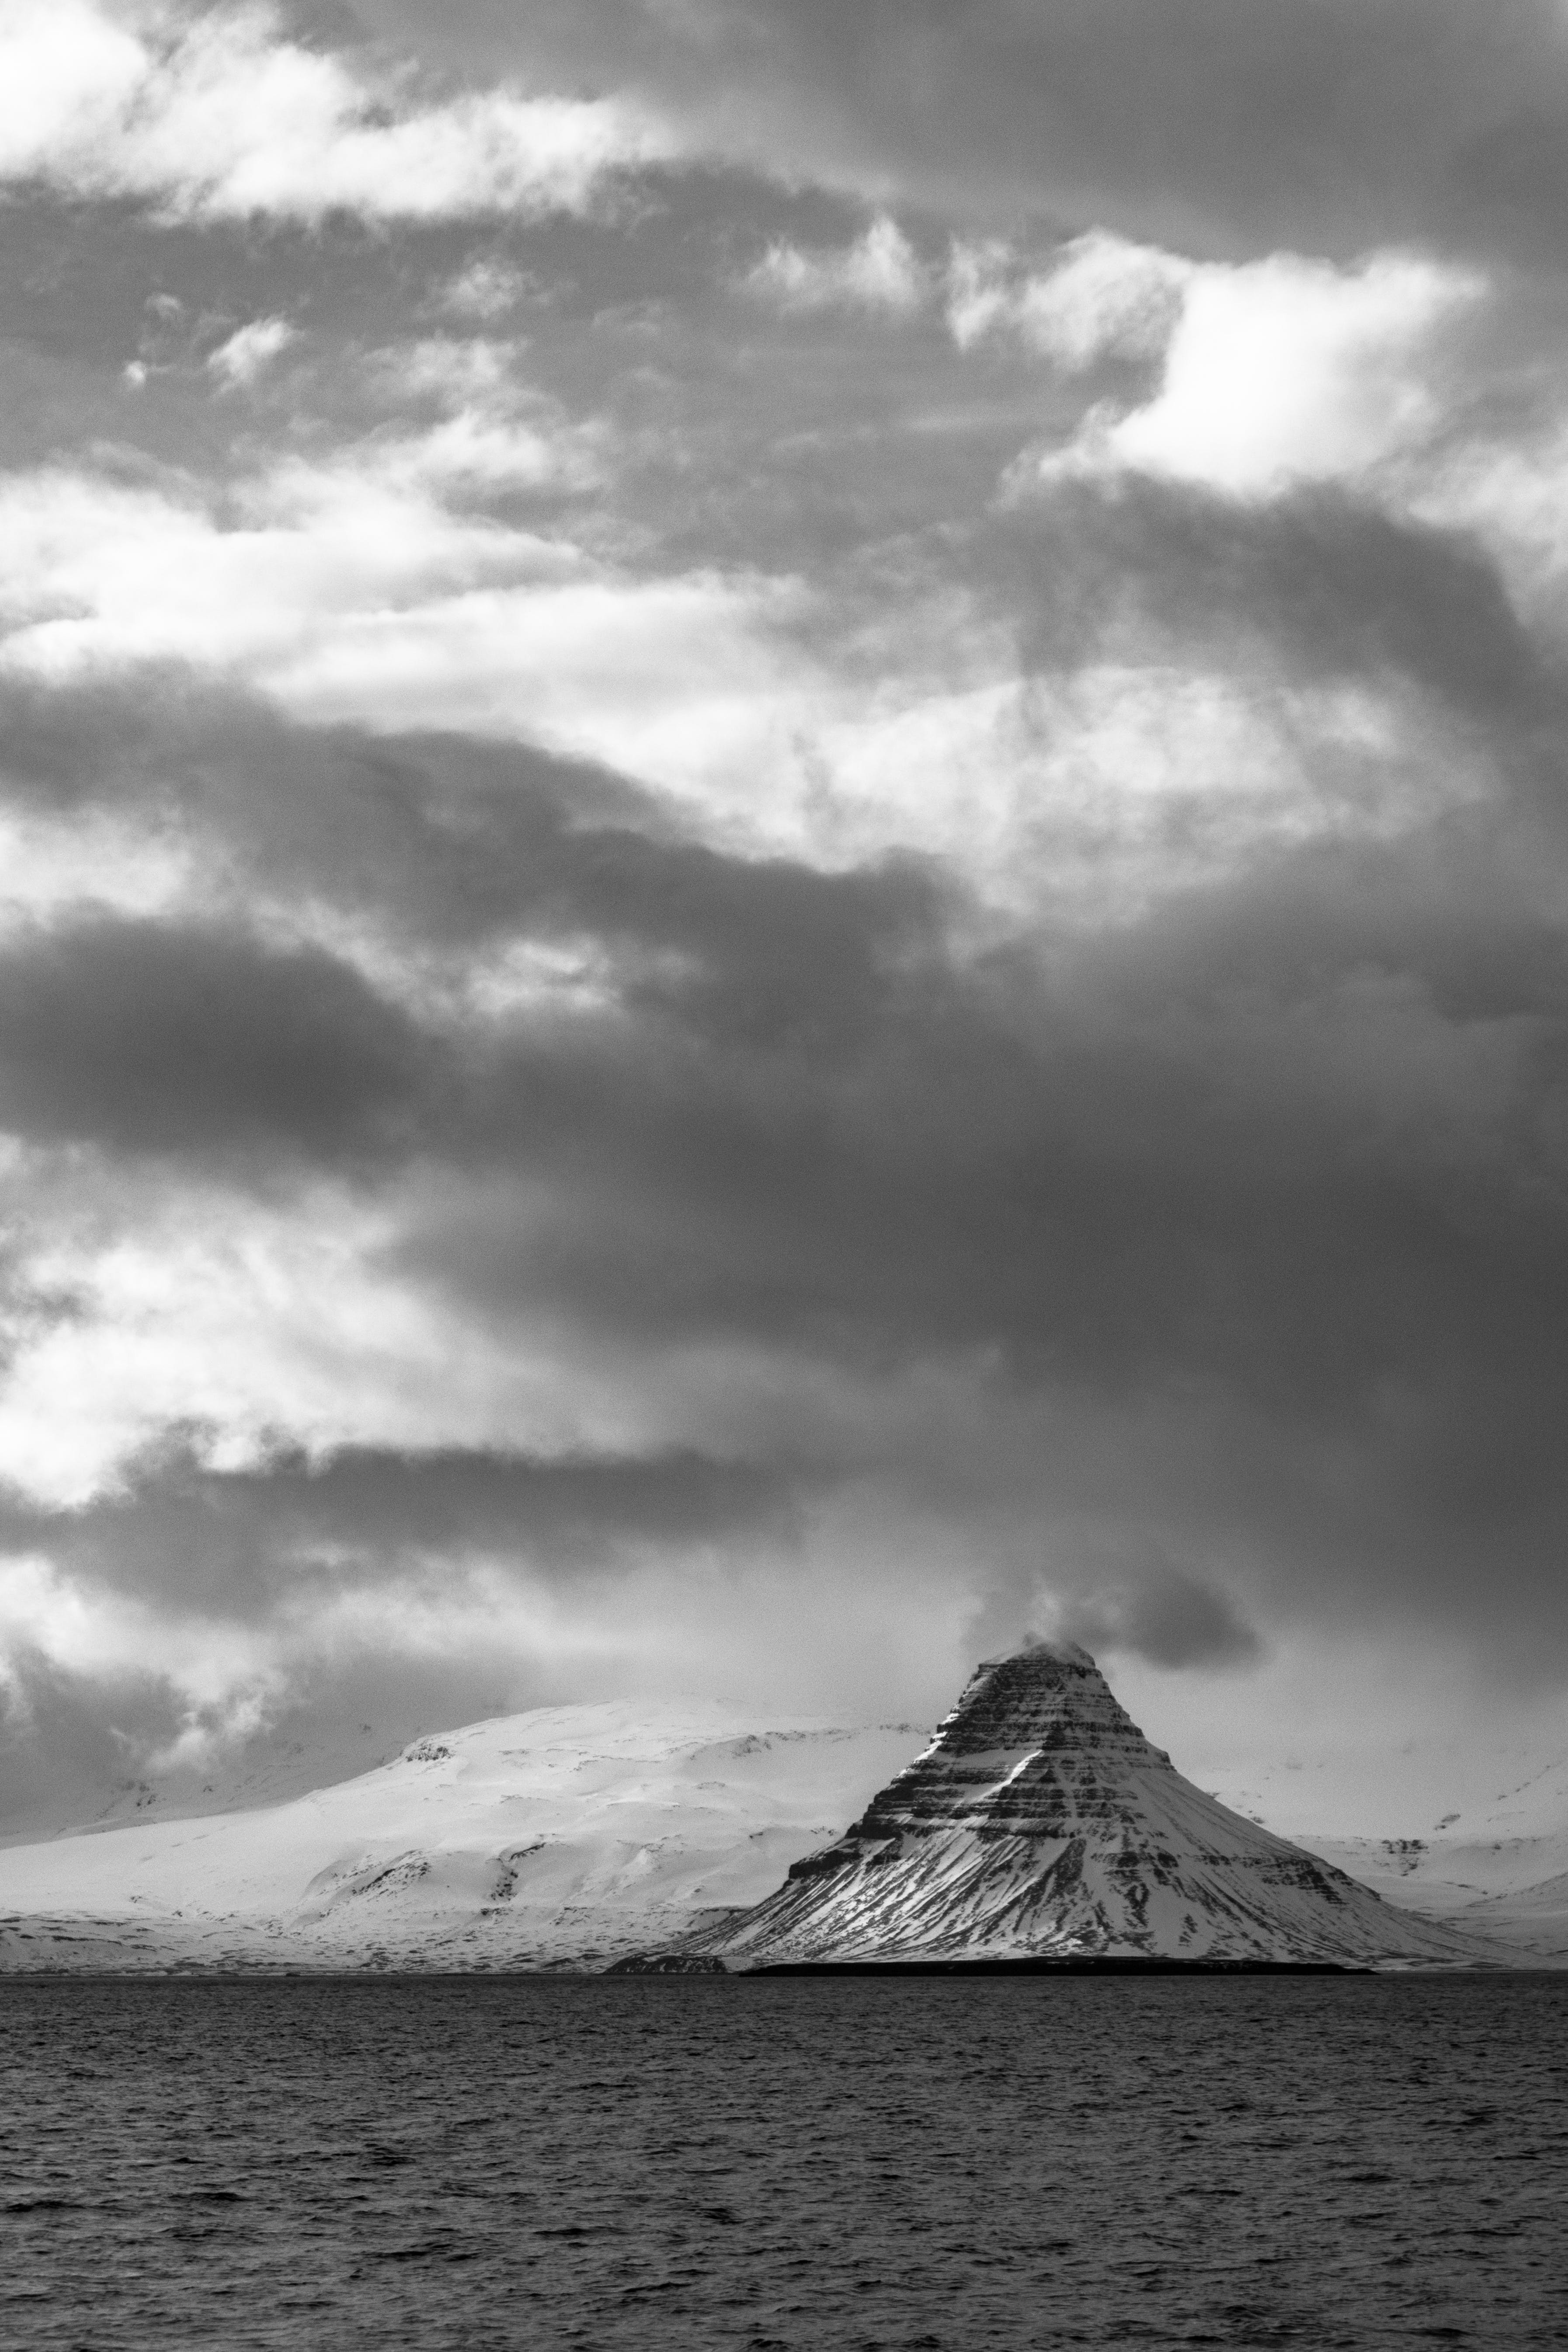 Grayscale Mountain and Clouds